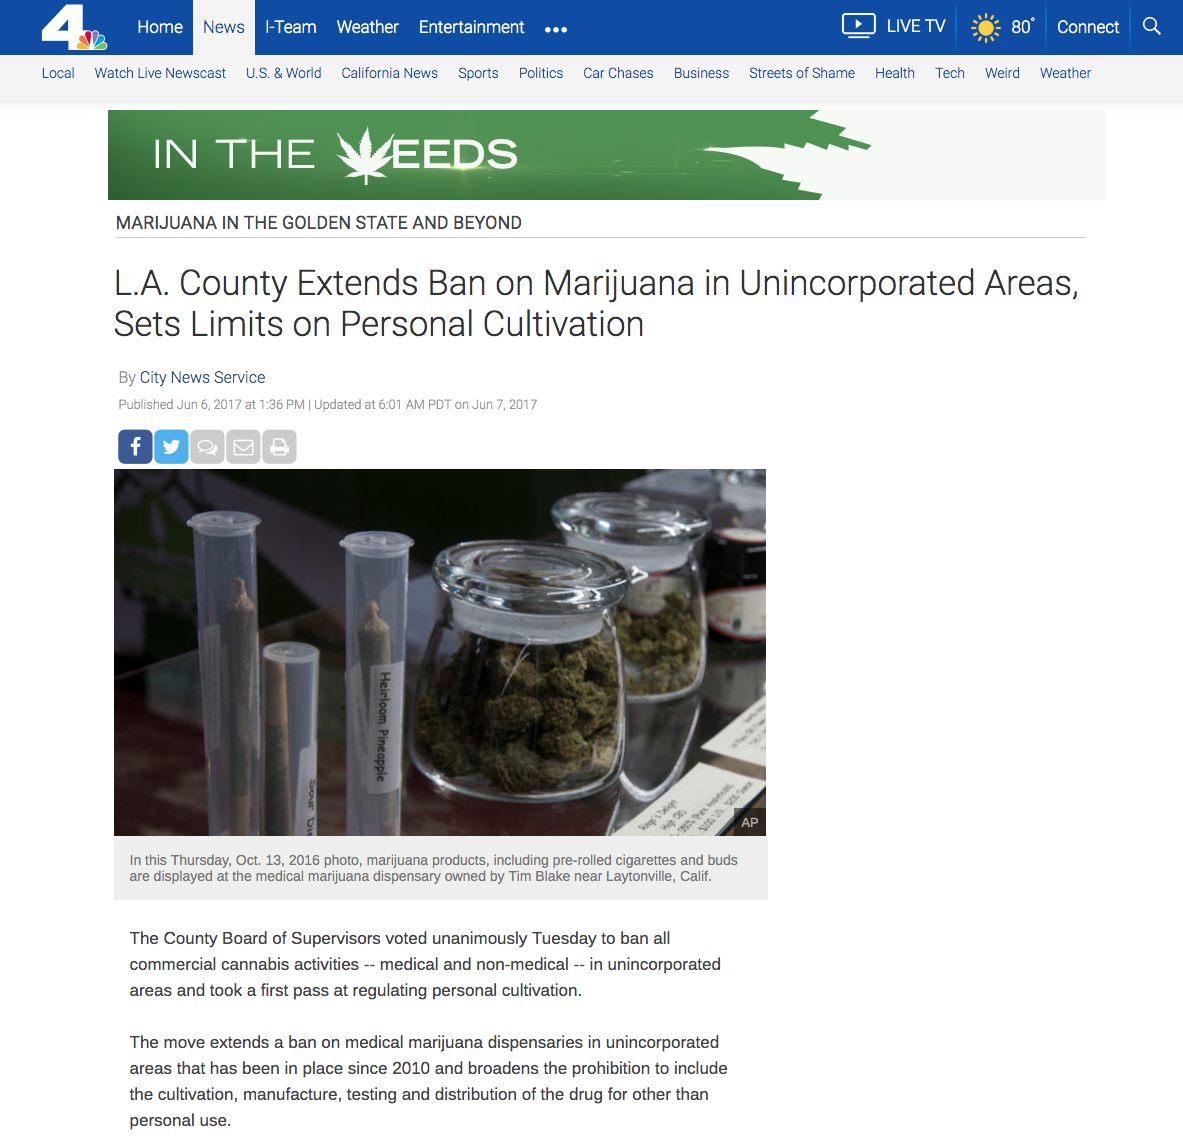 Article showing marijuana products, including pre-rolled cigarettes and buds are displayed at the medical marijuana dispensary owned by Tim Blake near Laytonville, Calif.